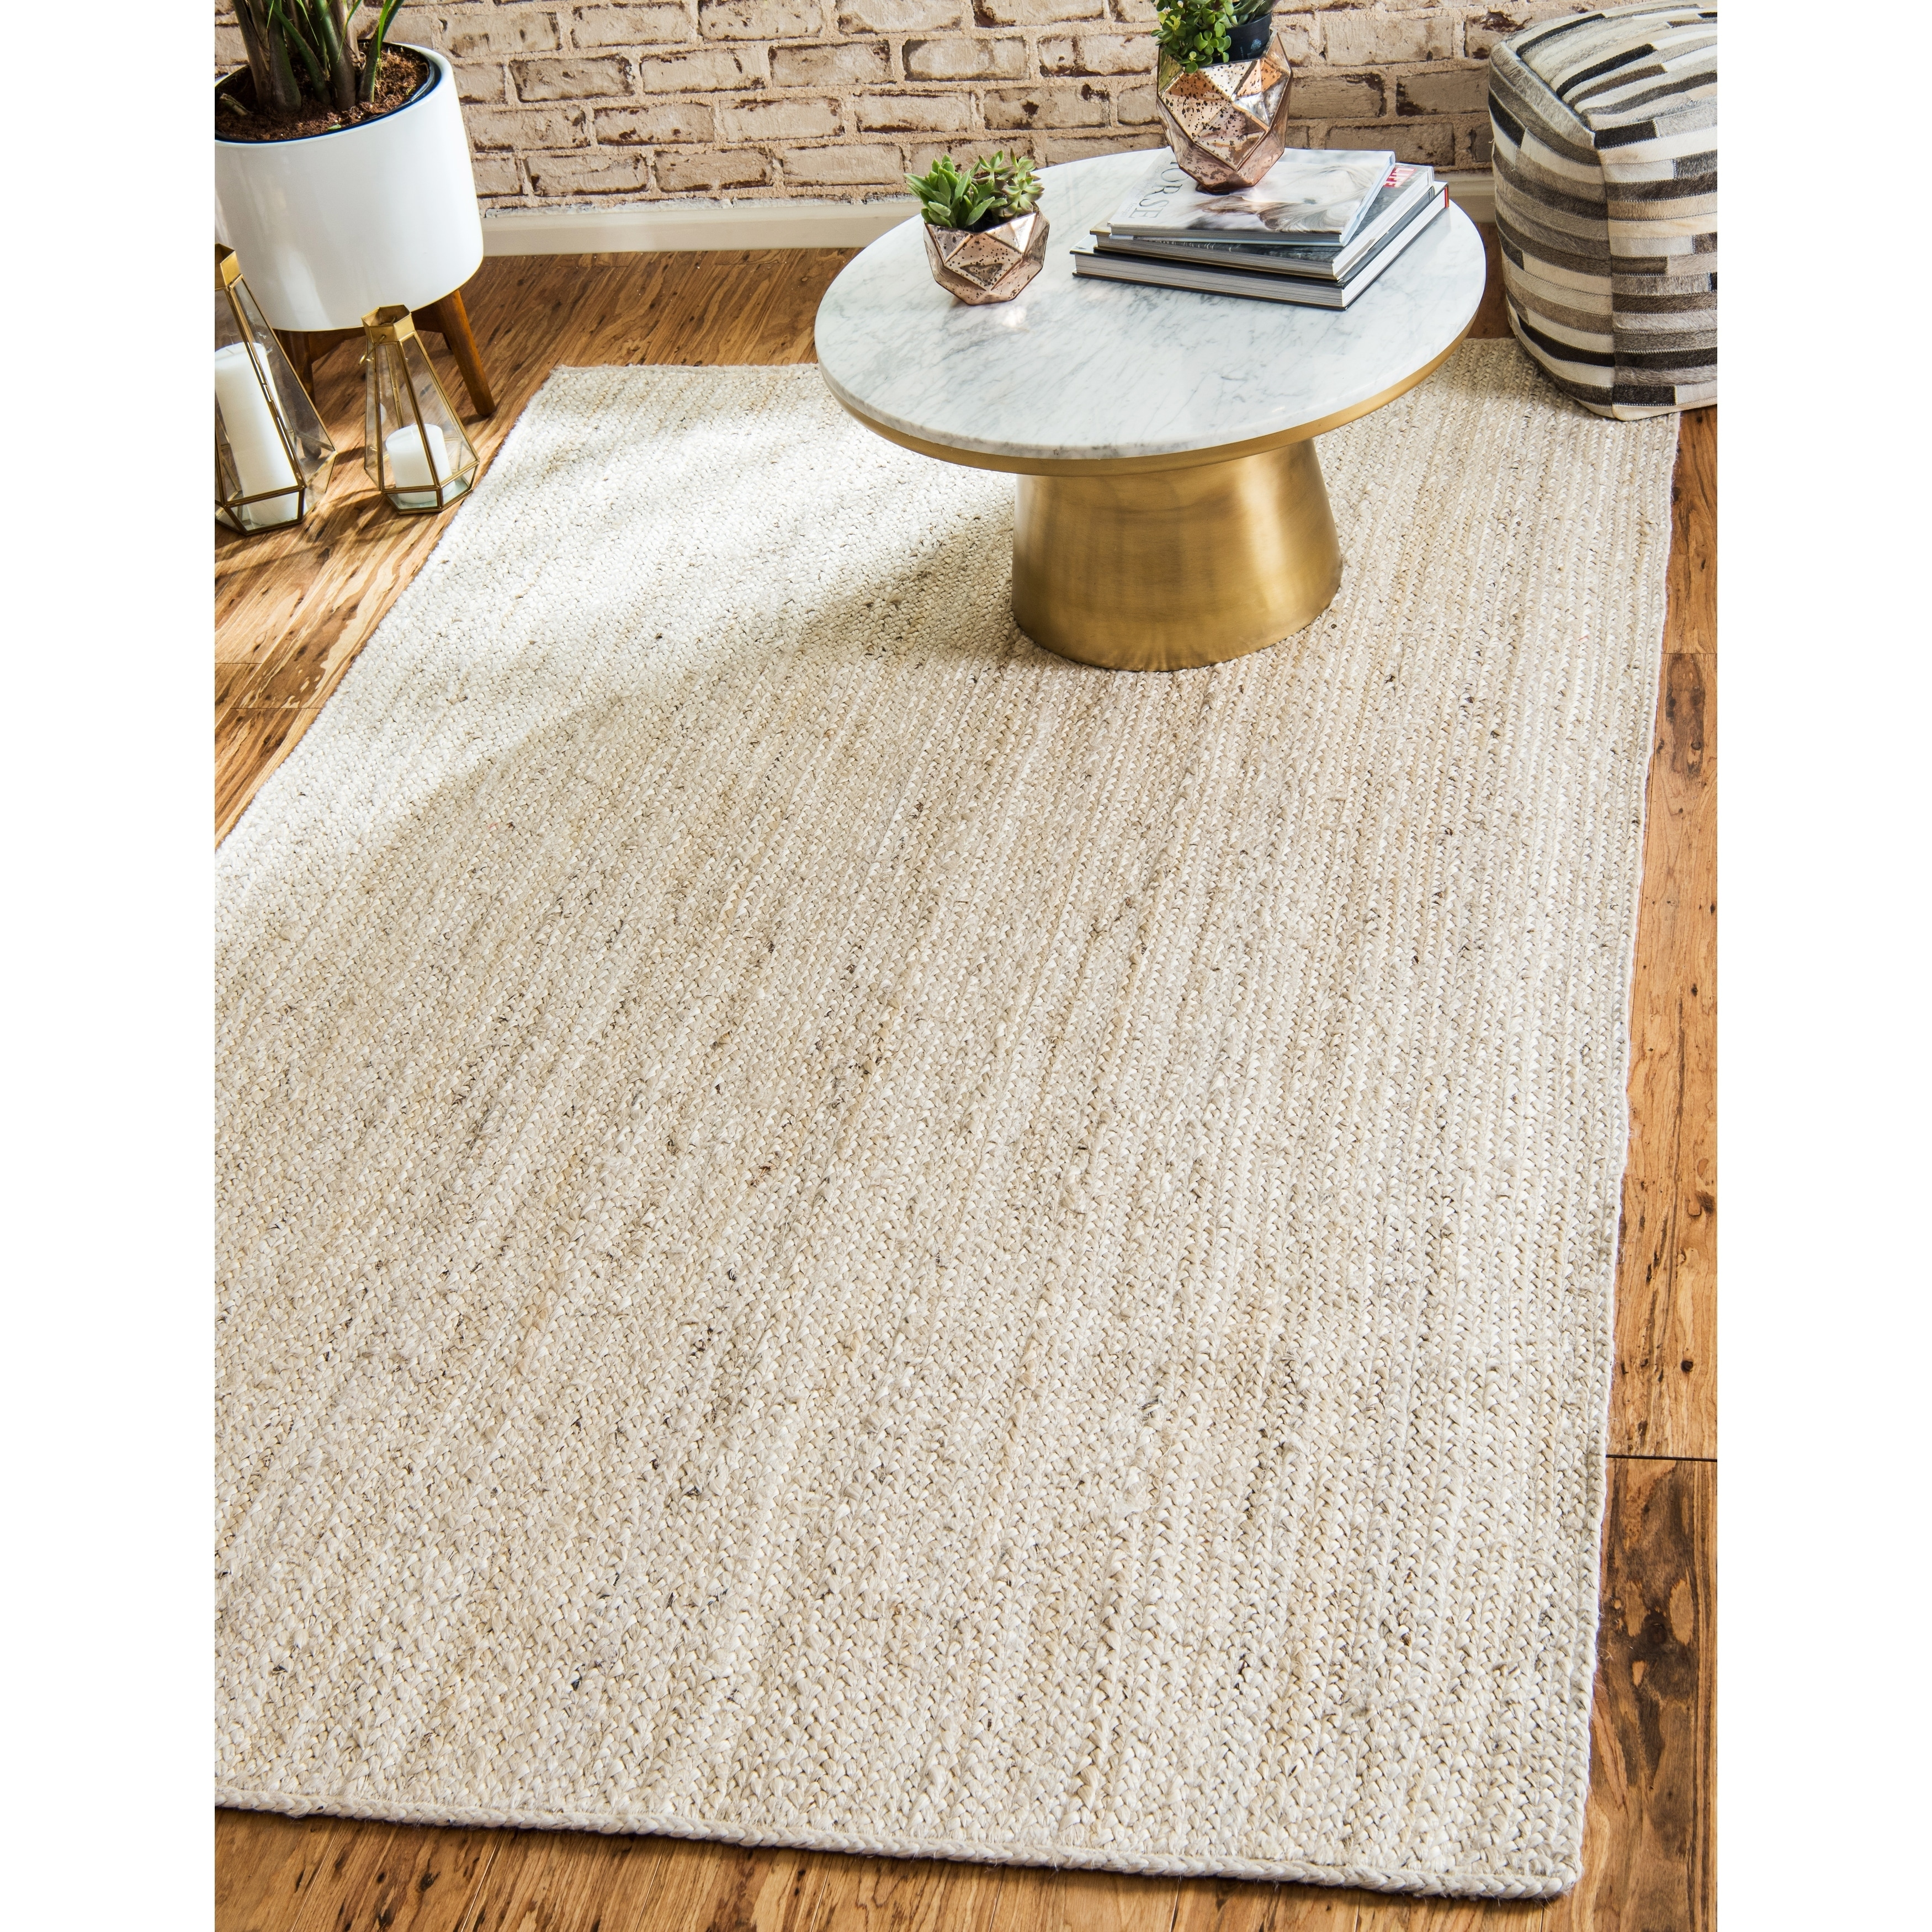 Unique Loom Delhi Braided Jute Area Rug 9 X 12 On Free Shipping Today 18082031